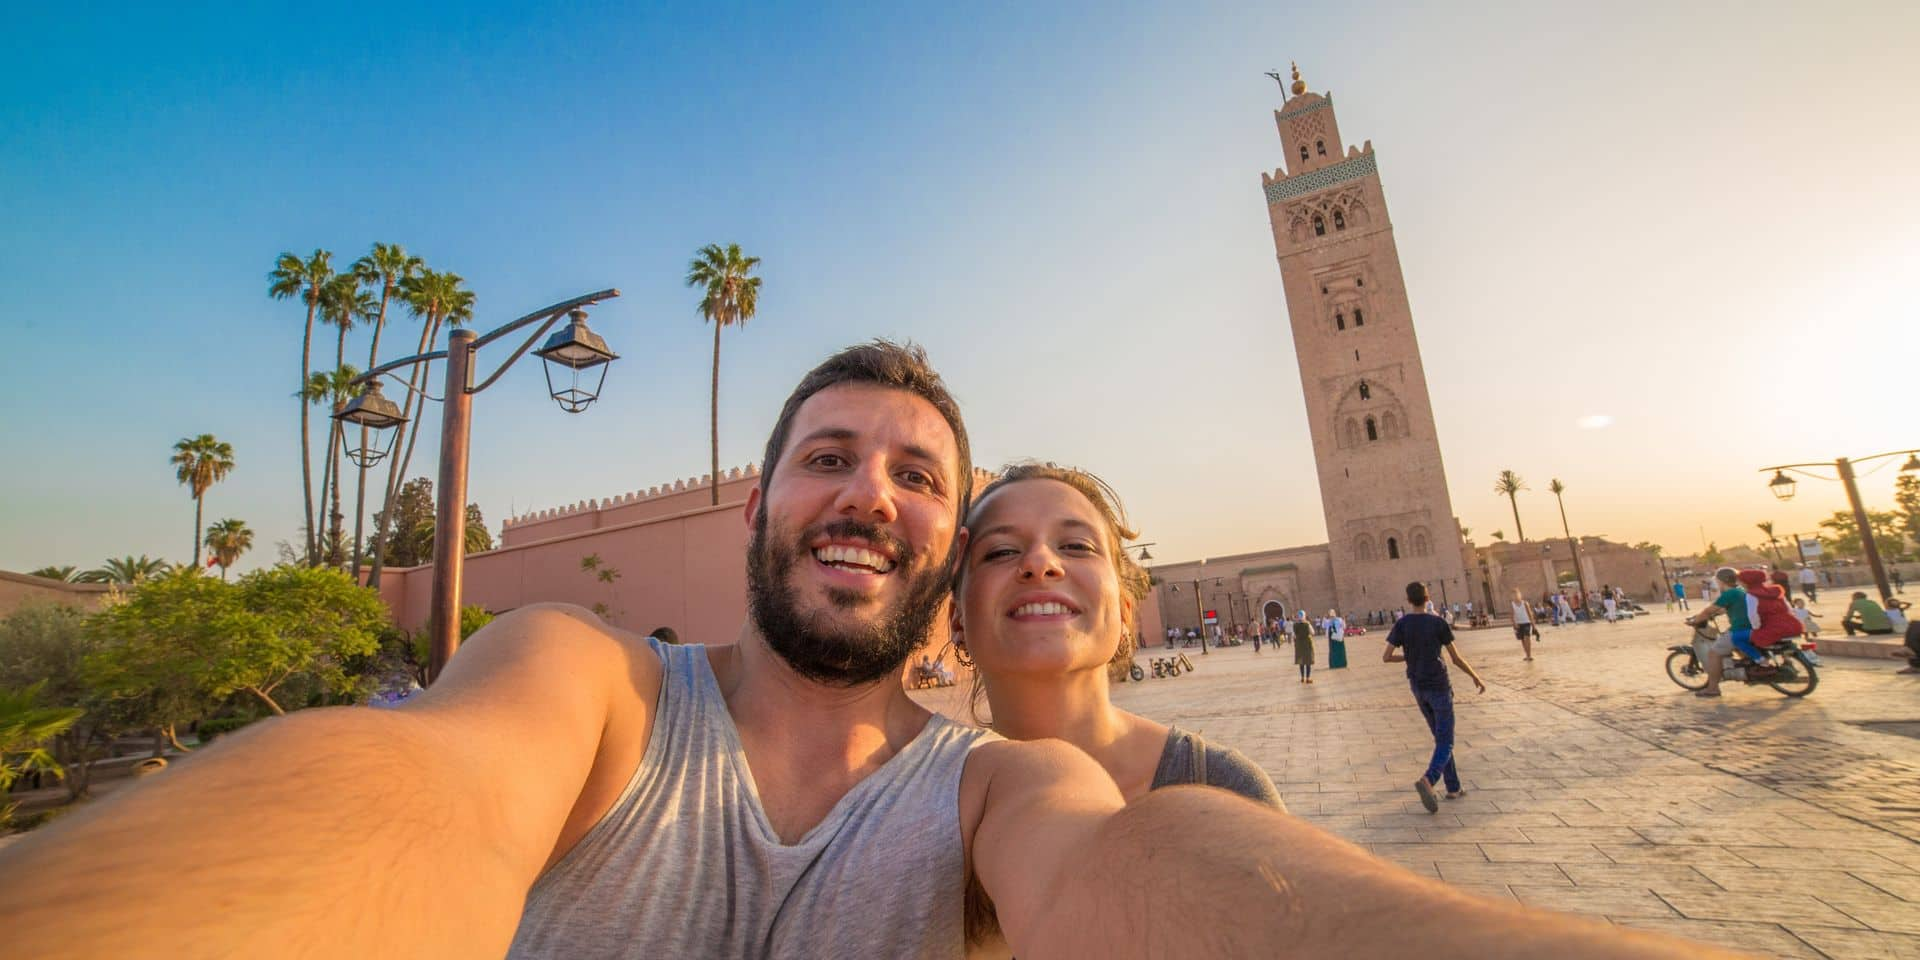 Happy,Smiling,Tourists,Take,Selfie,Photo,In,Front,Of,Koutoubia